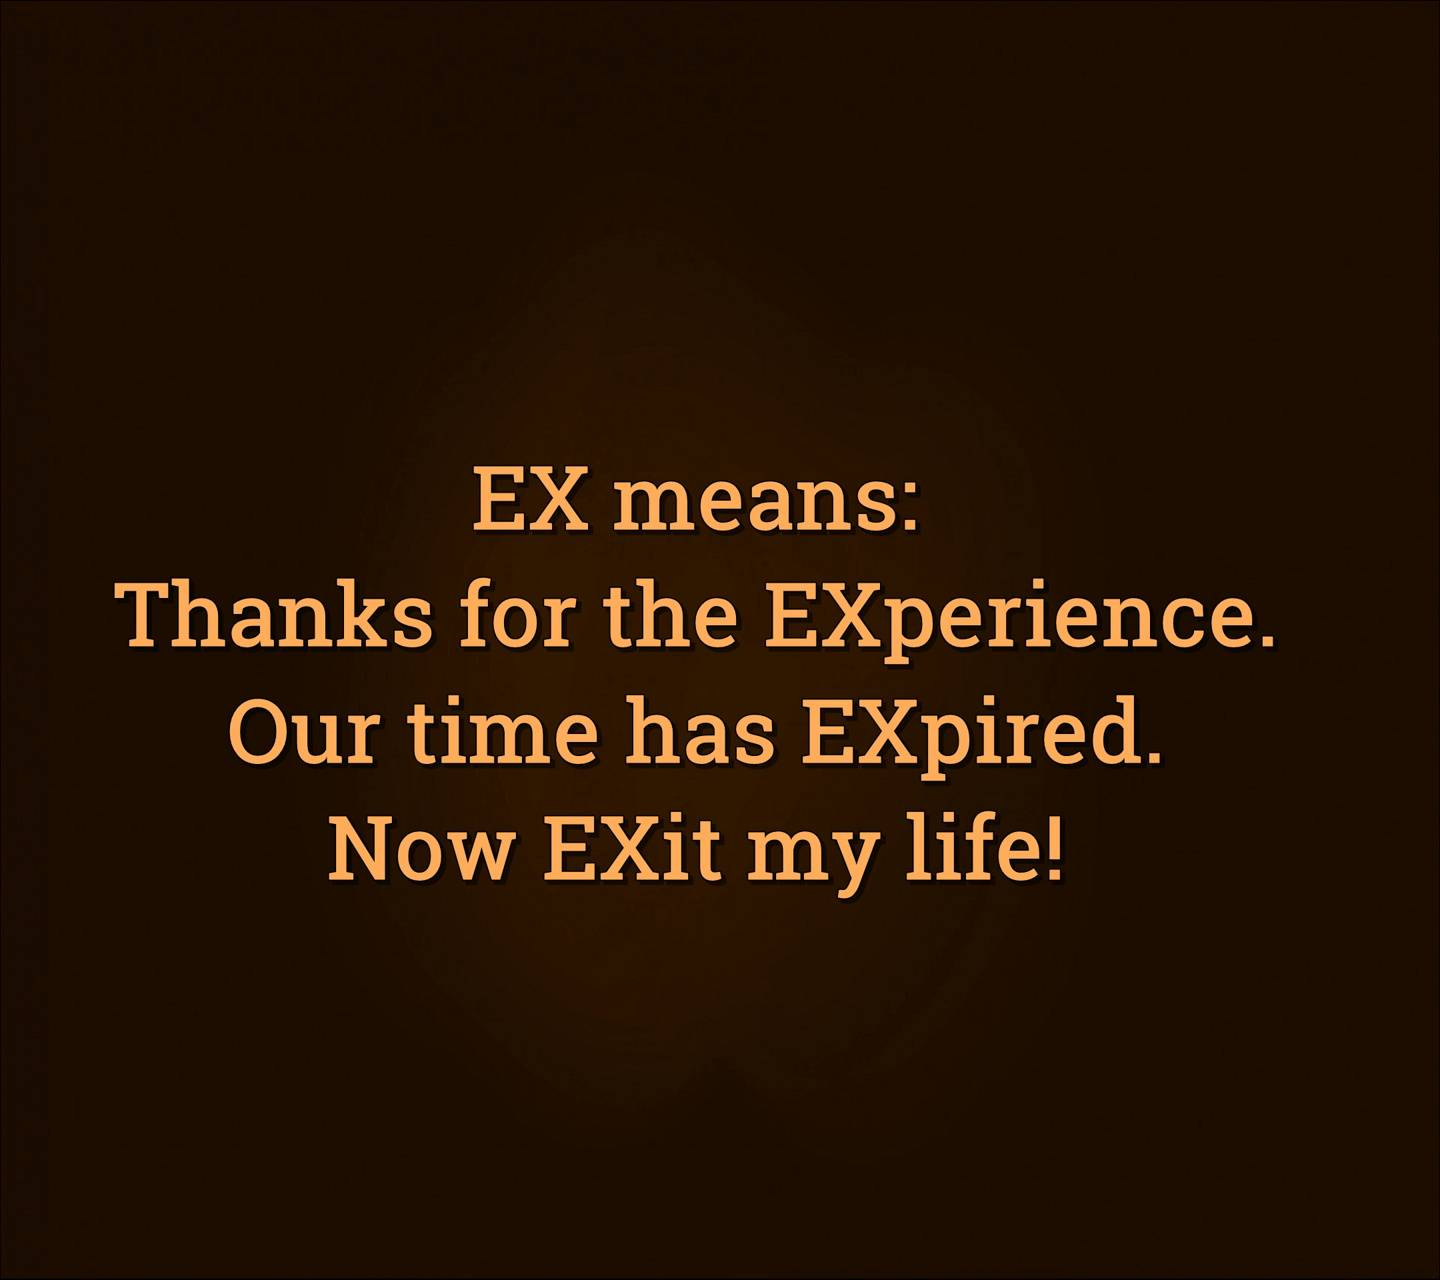 ex means